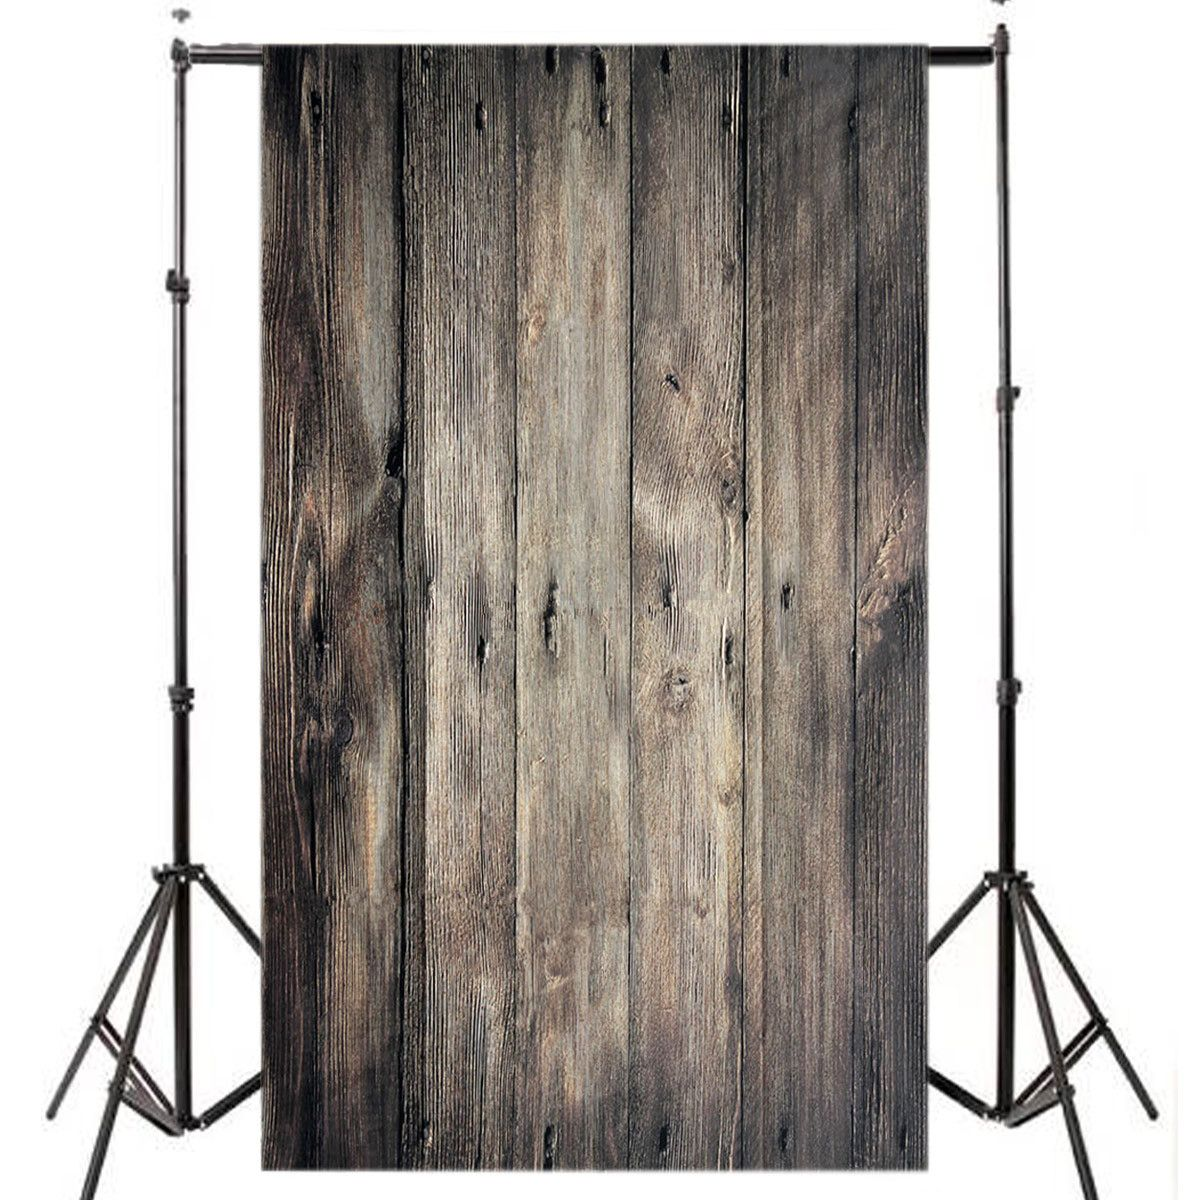 3x5FT Vintage Wooden Plank Wall Floor Costume Wedding Custom Studio Backdrops Photo Background Vinyl New promotion 6pcs bear baby crib bedding set crib sets 100